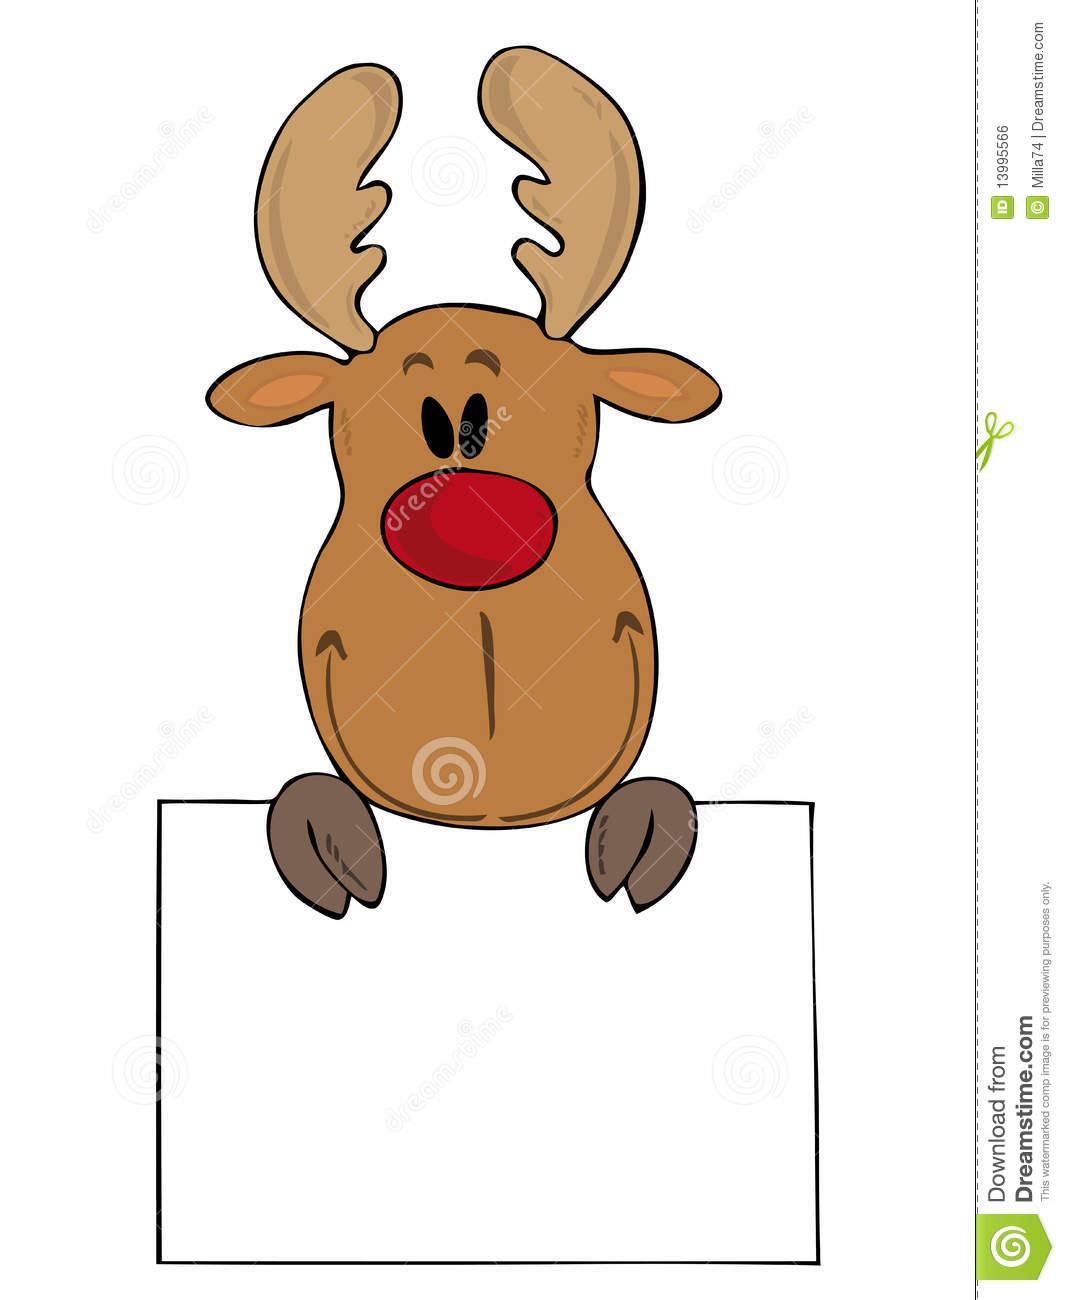 Funny Reindeer. Royalty Free Stock Image - Image: 13995566